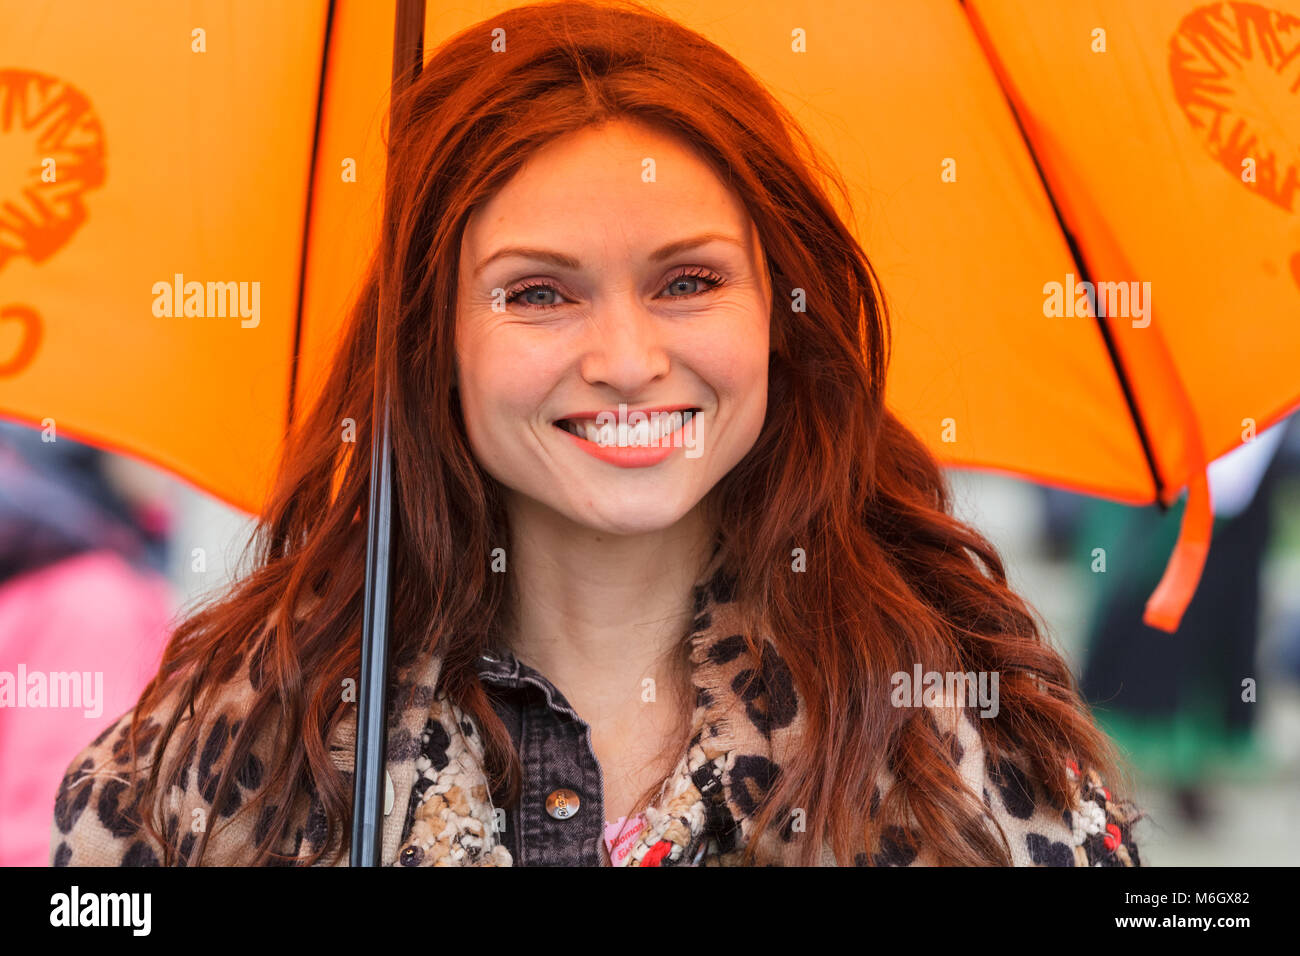 Westminster, London, 4th March 2018. Singer Sophie Ellis-Bextor joins and supports the march. Thousands of placard - Stock Image